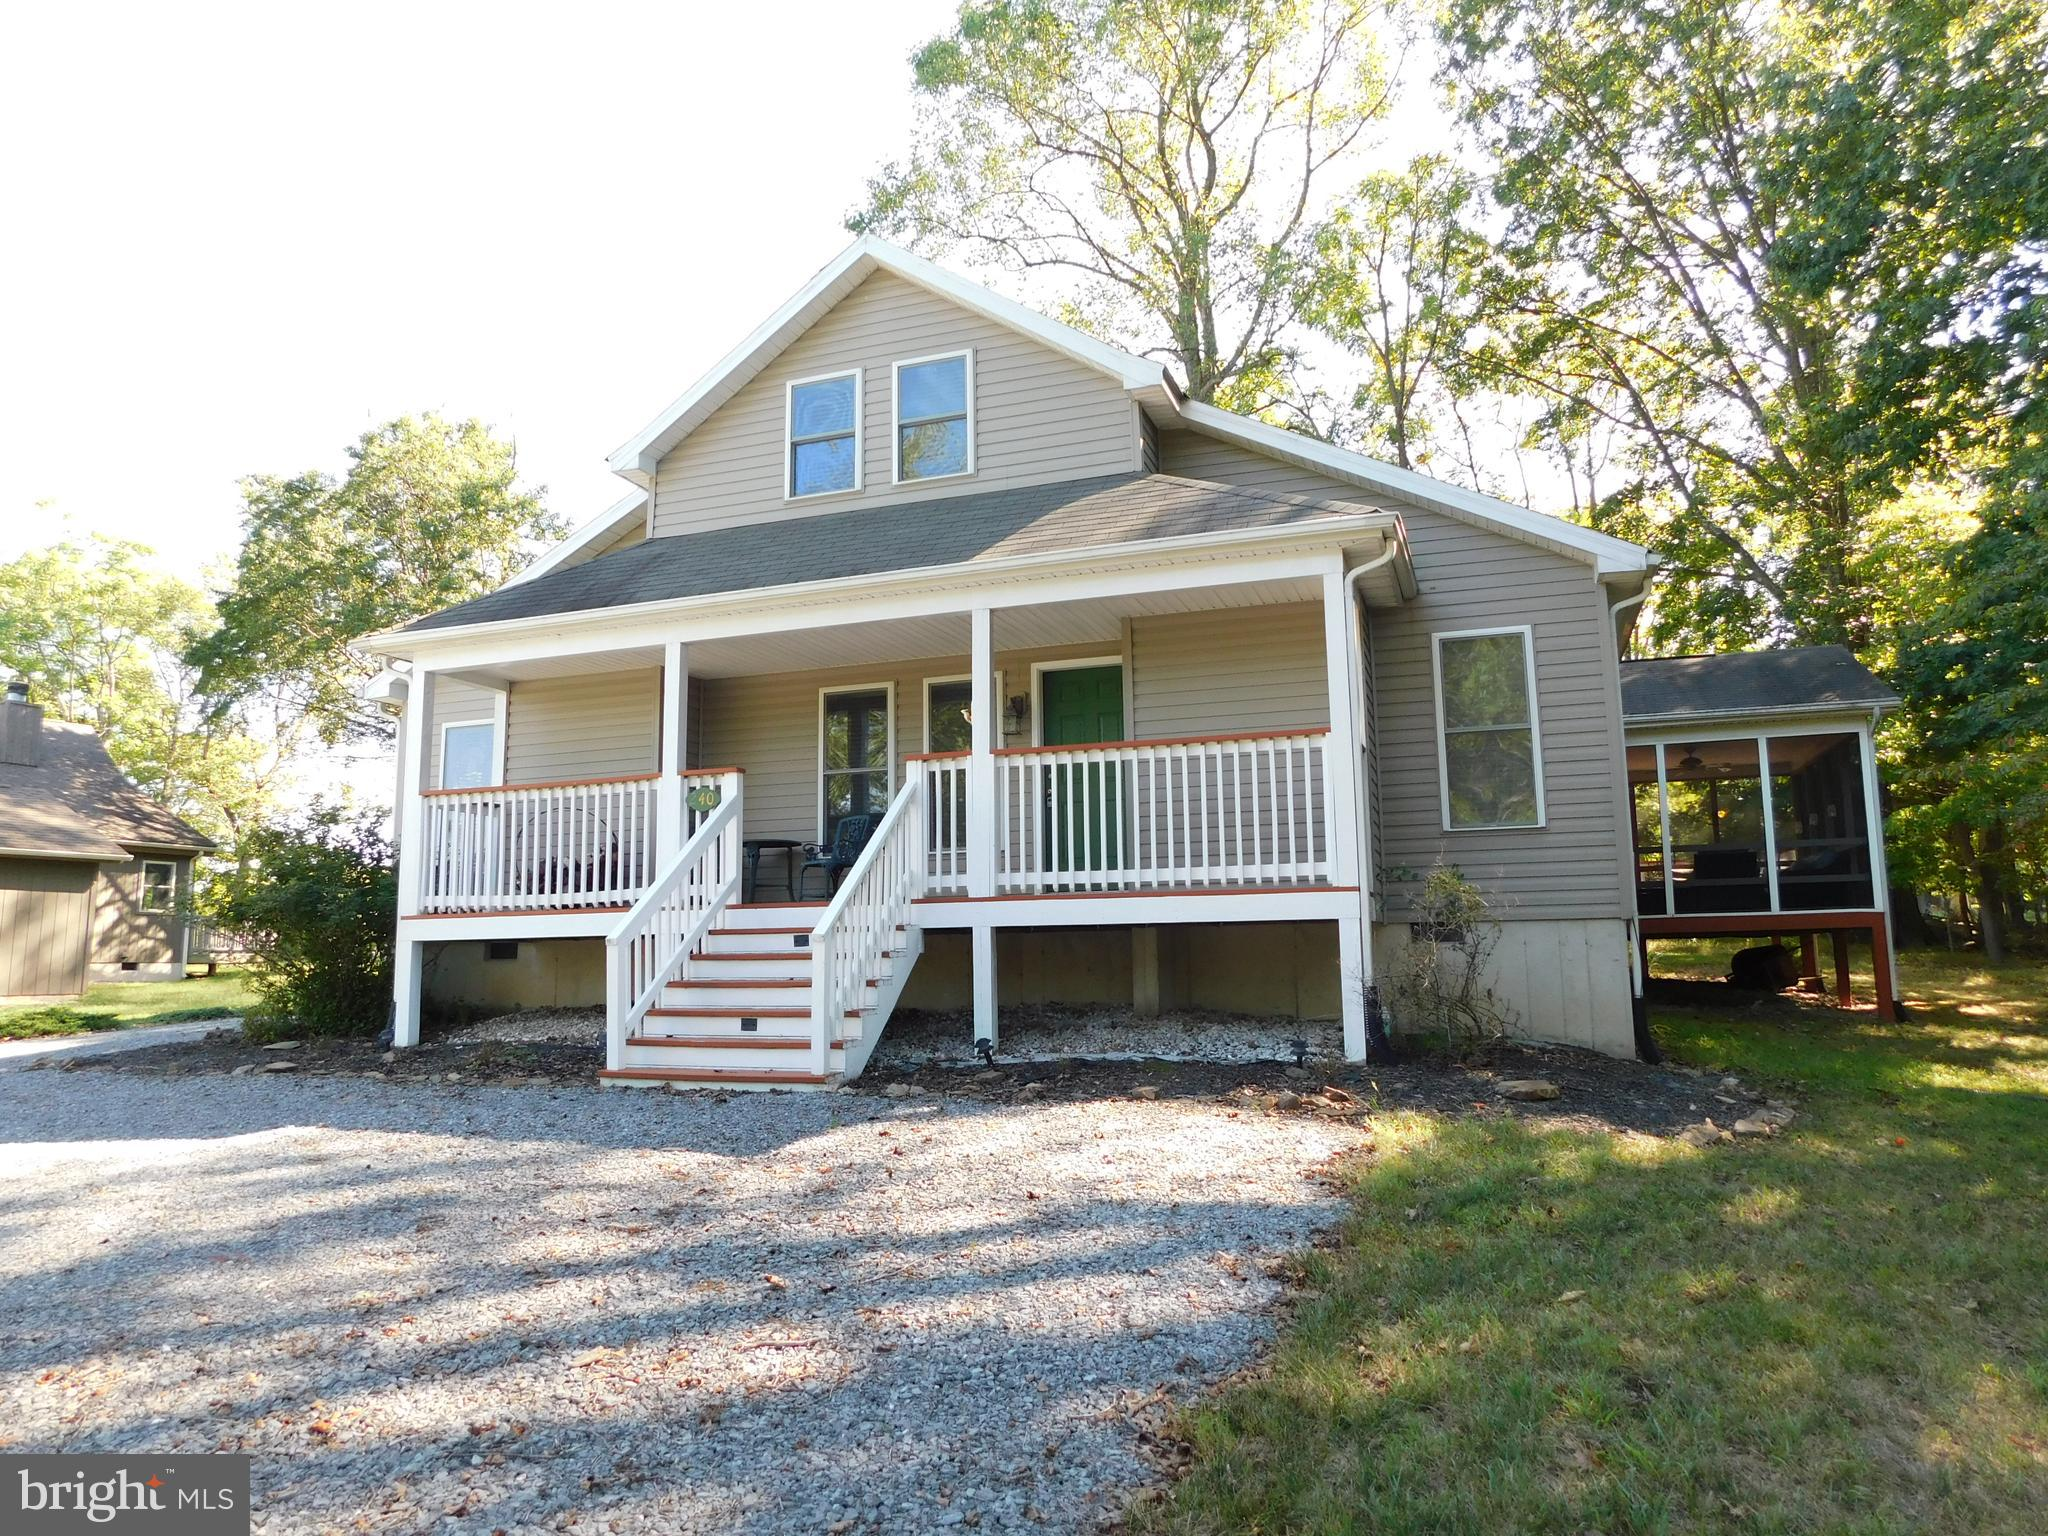 Feel free to relax and unwind at this well maintained single family home at The Woods!  Property is